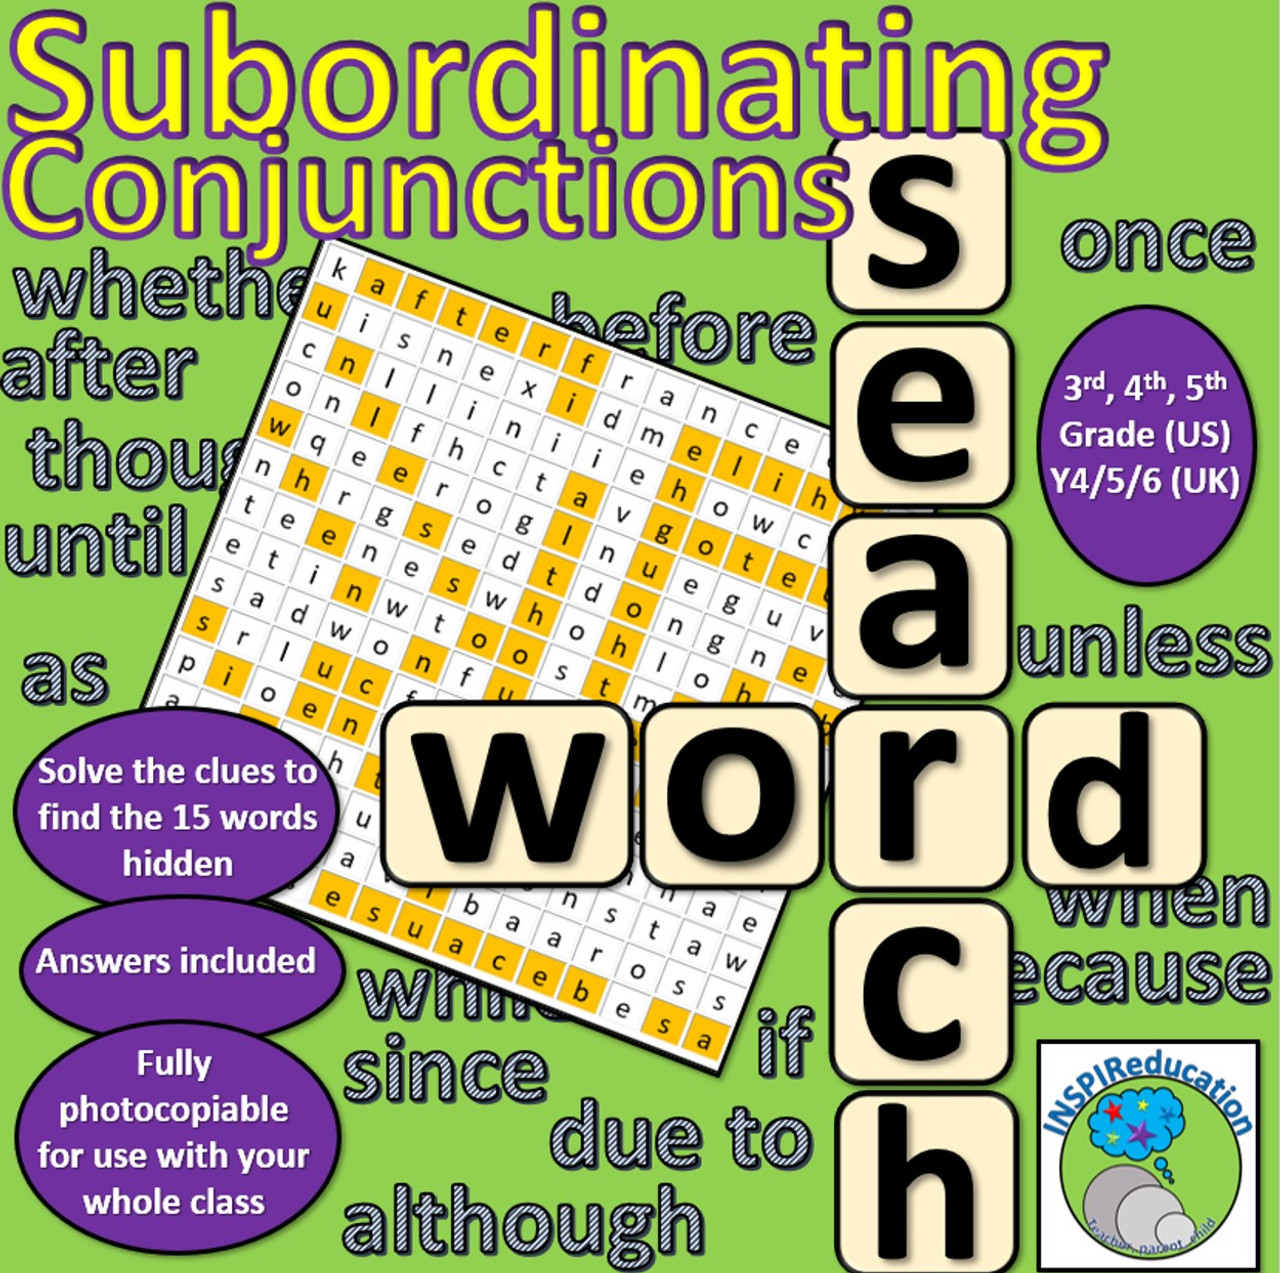 Subordinating Conjunctions Wordsearch (Find all 15 conjunctions) - Amped Up  Learning [ 1273 x 1280 Pixel ]